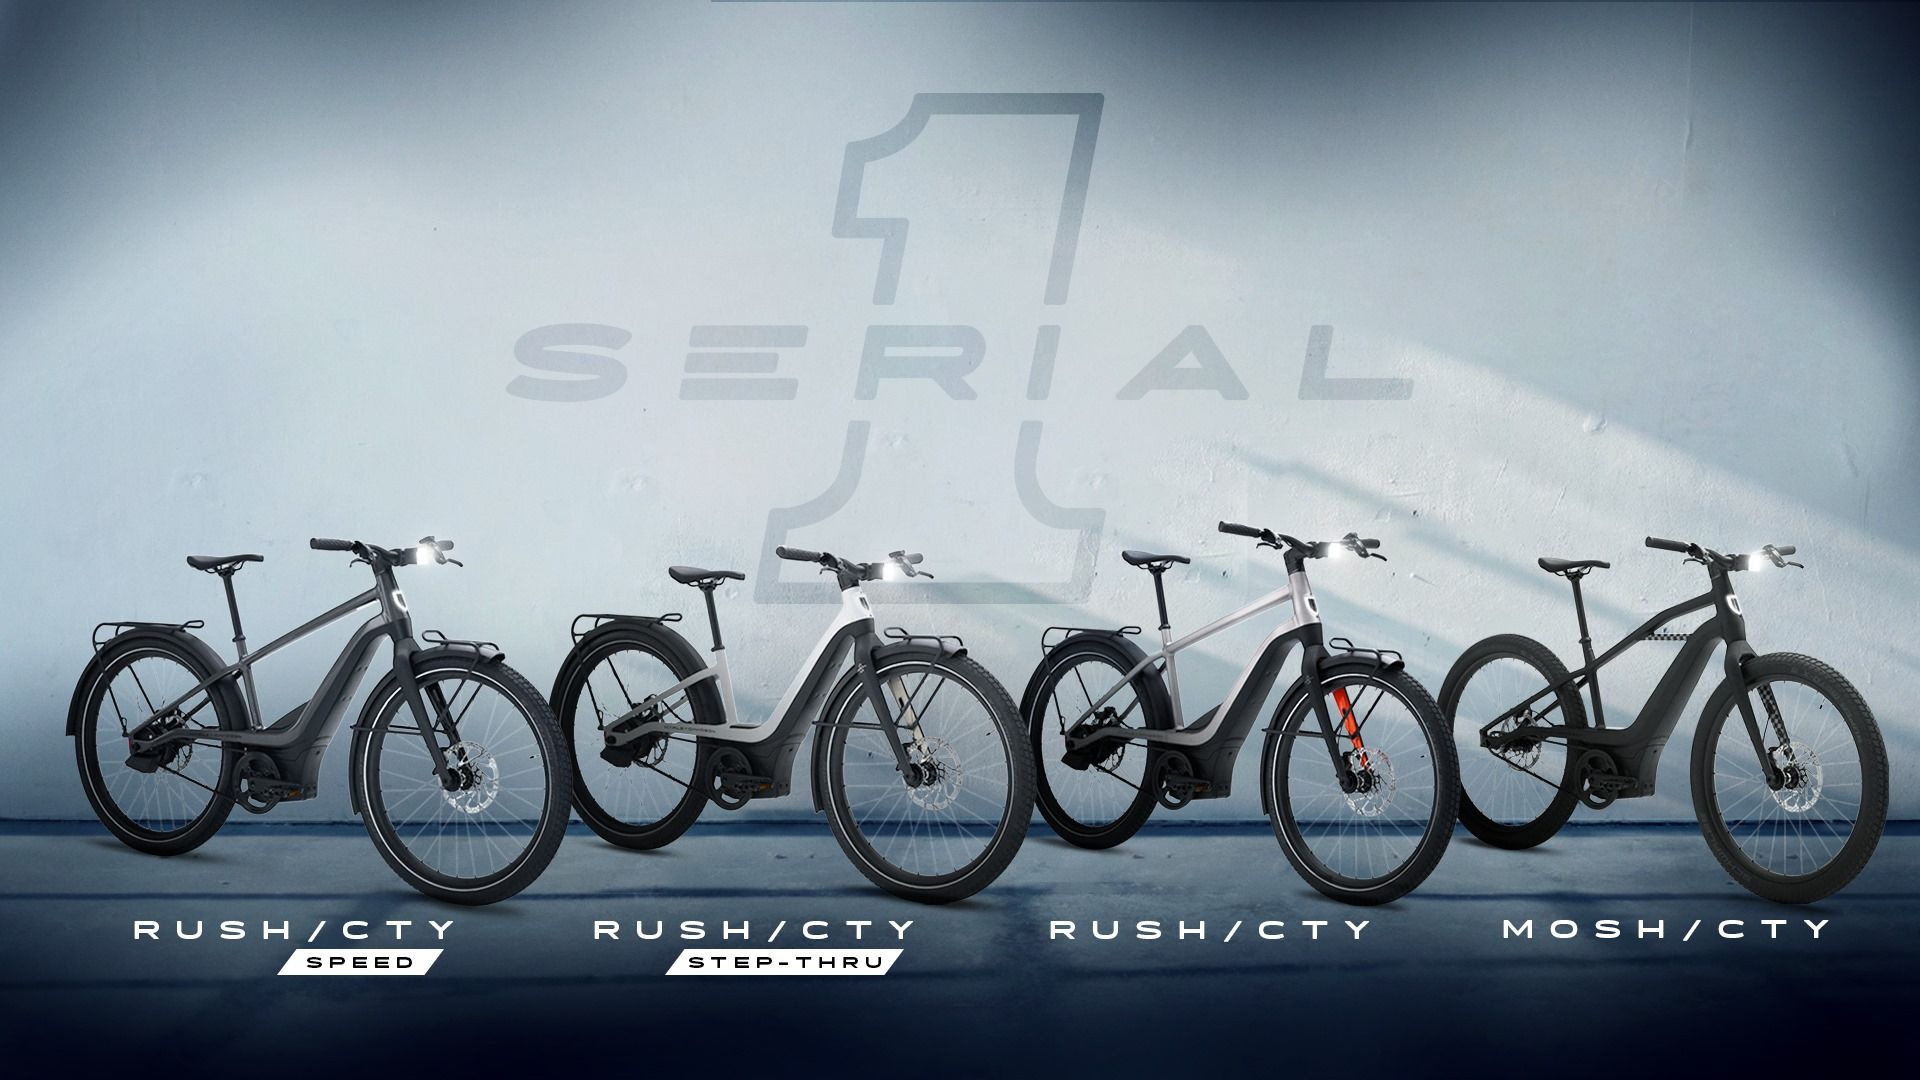 New To The Shop: Serial 1 Ebikes